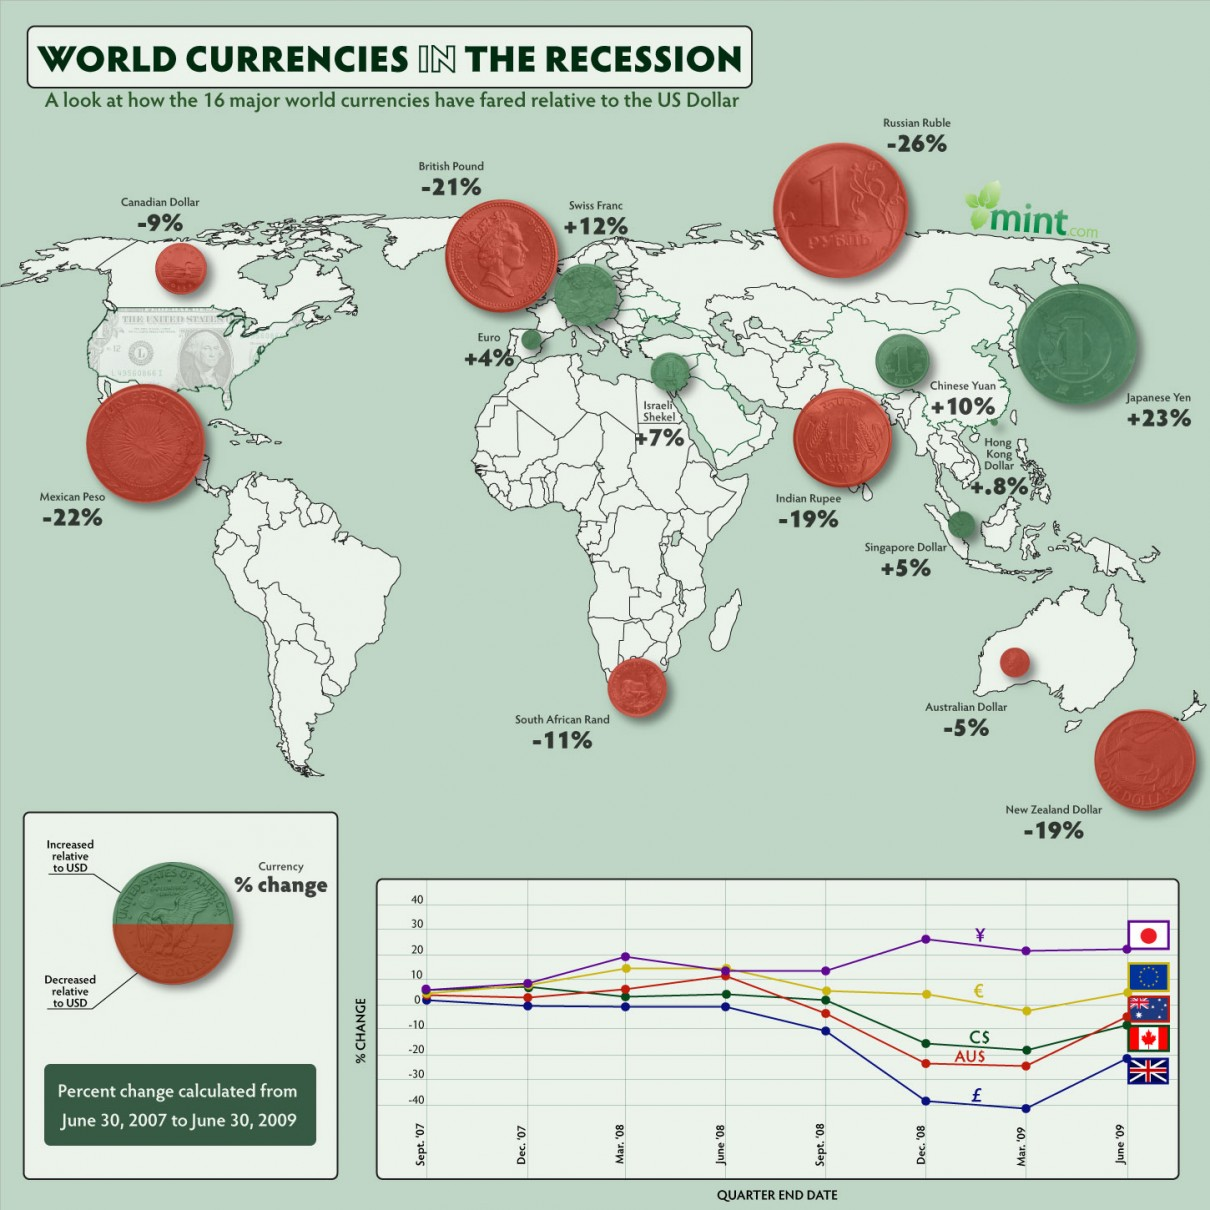 Currencies of the world during recession